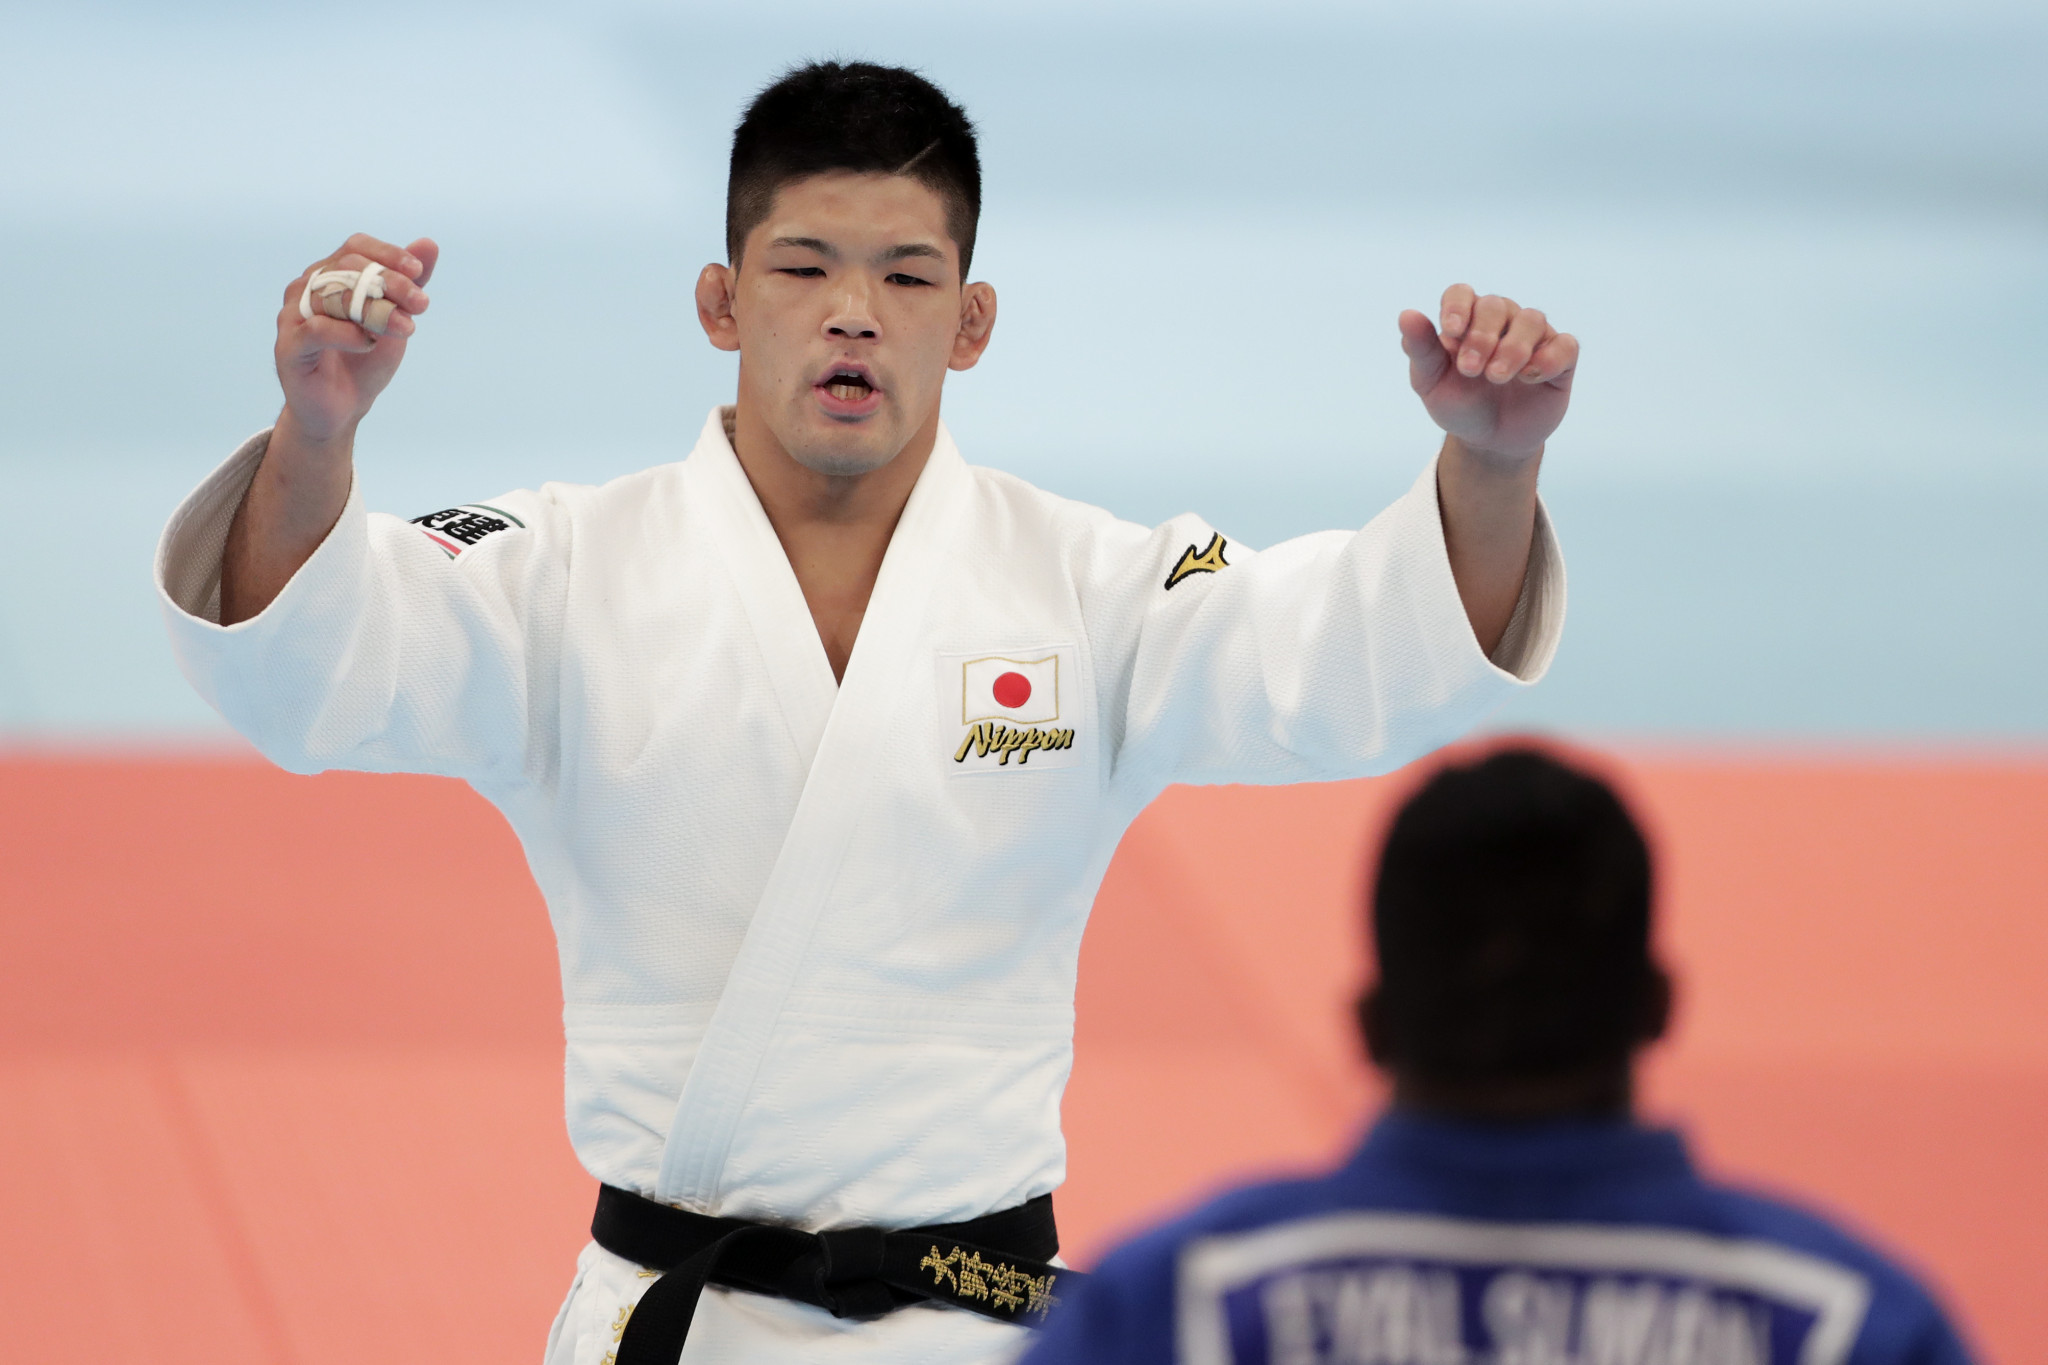 Ono to defend Olympic judo title at Tokyo 2020